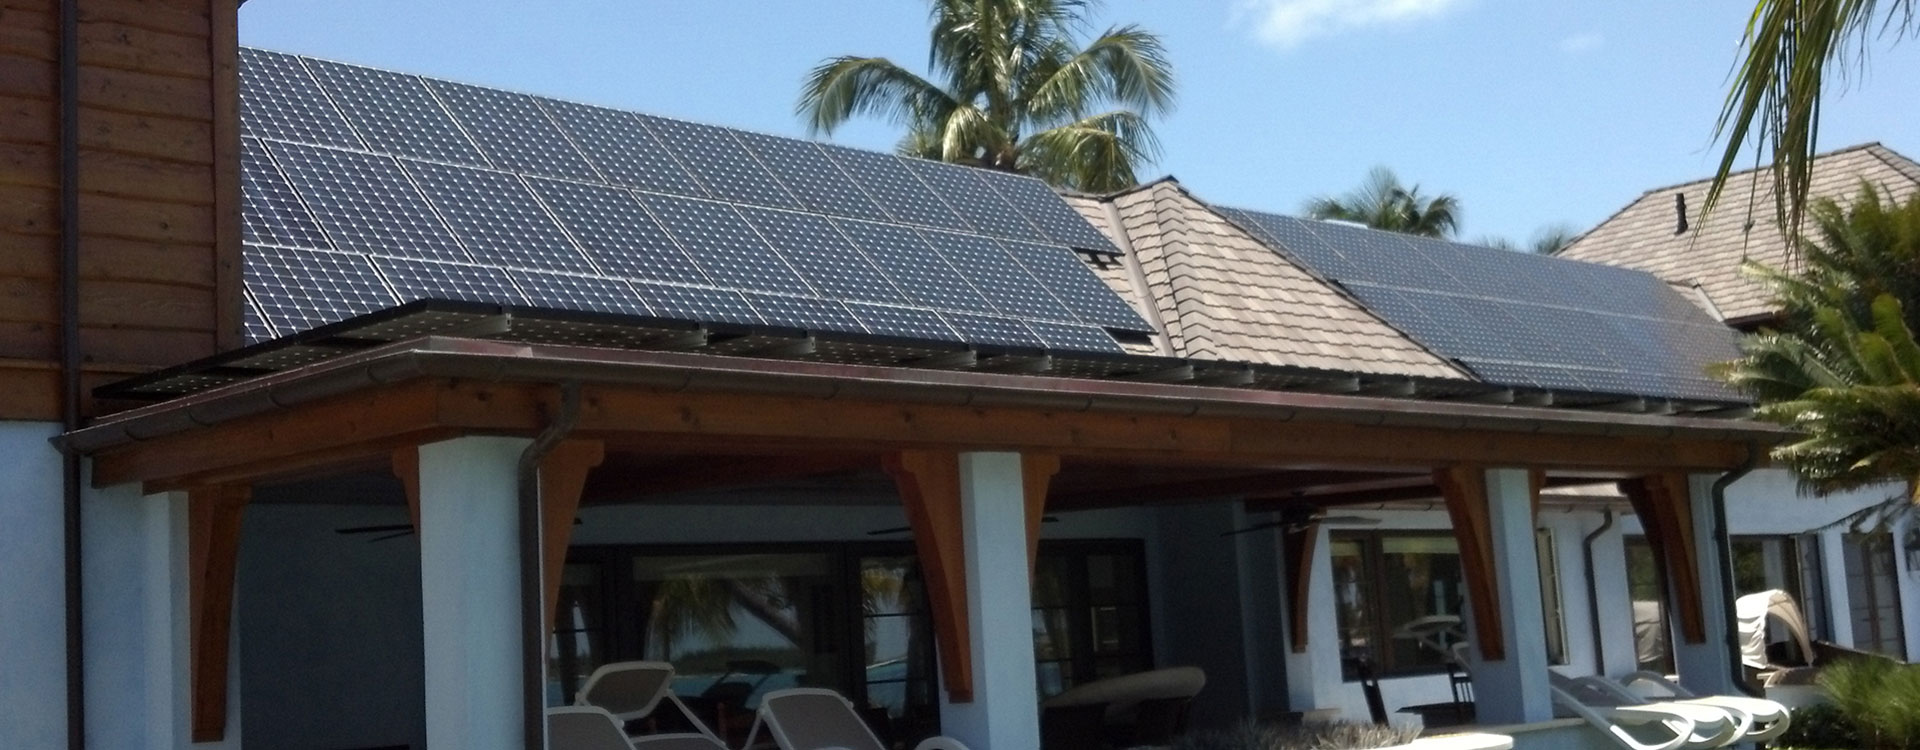 Solar Installations West Palm Beach Residential And